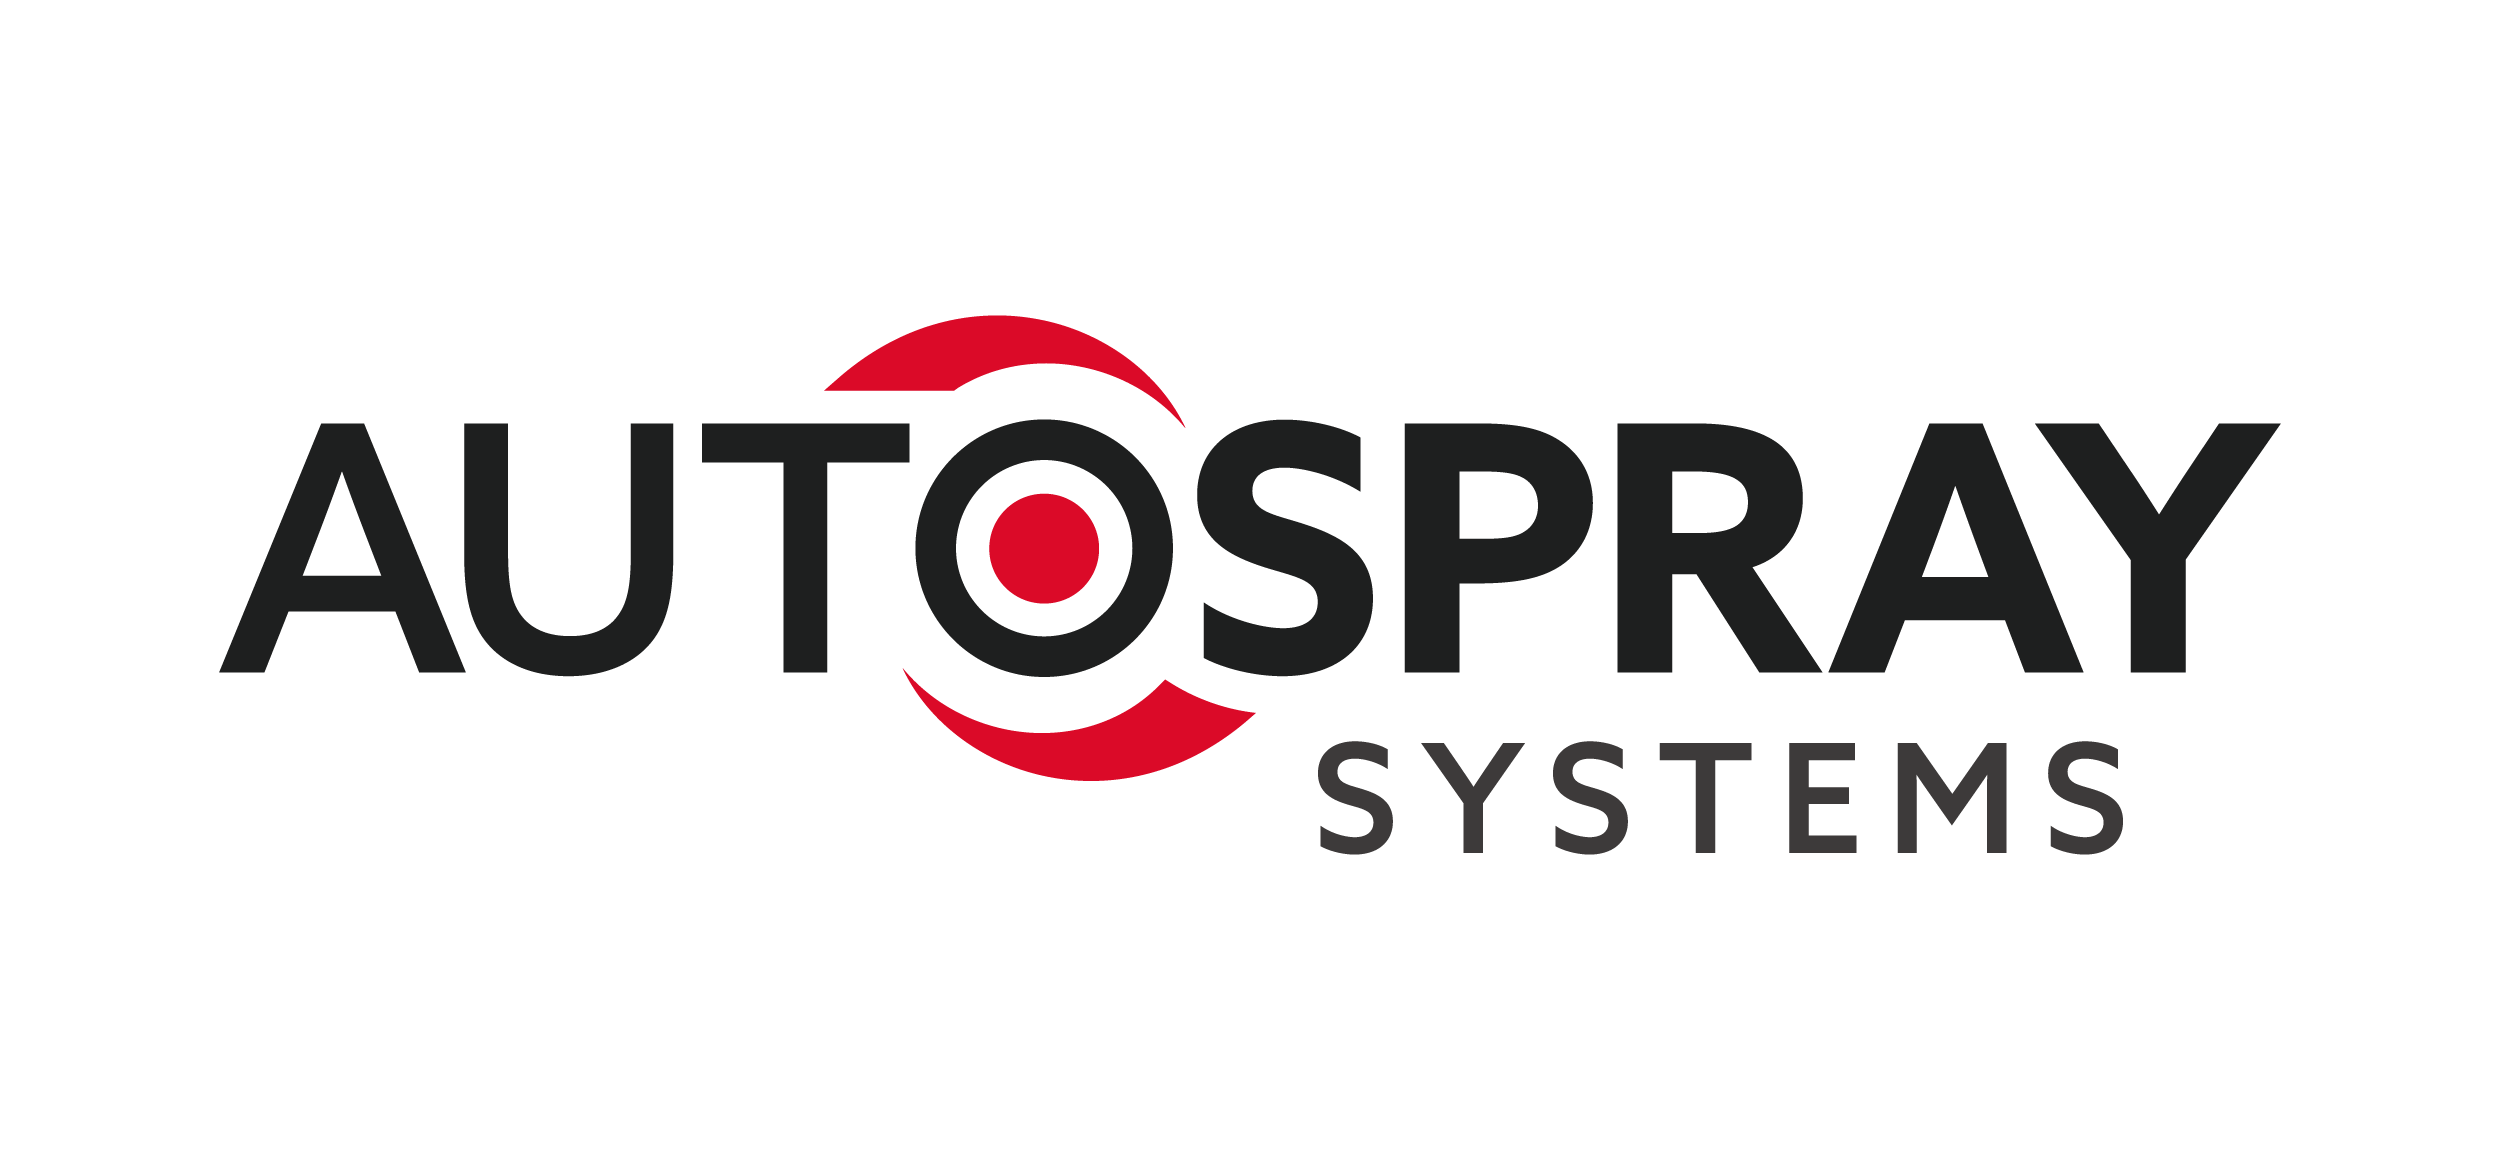 Autospray logo for drone demo page